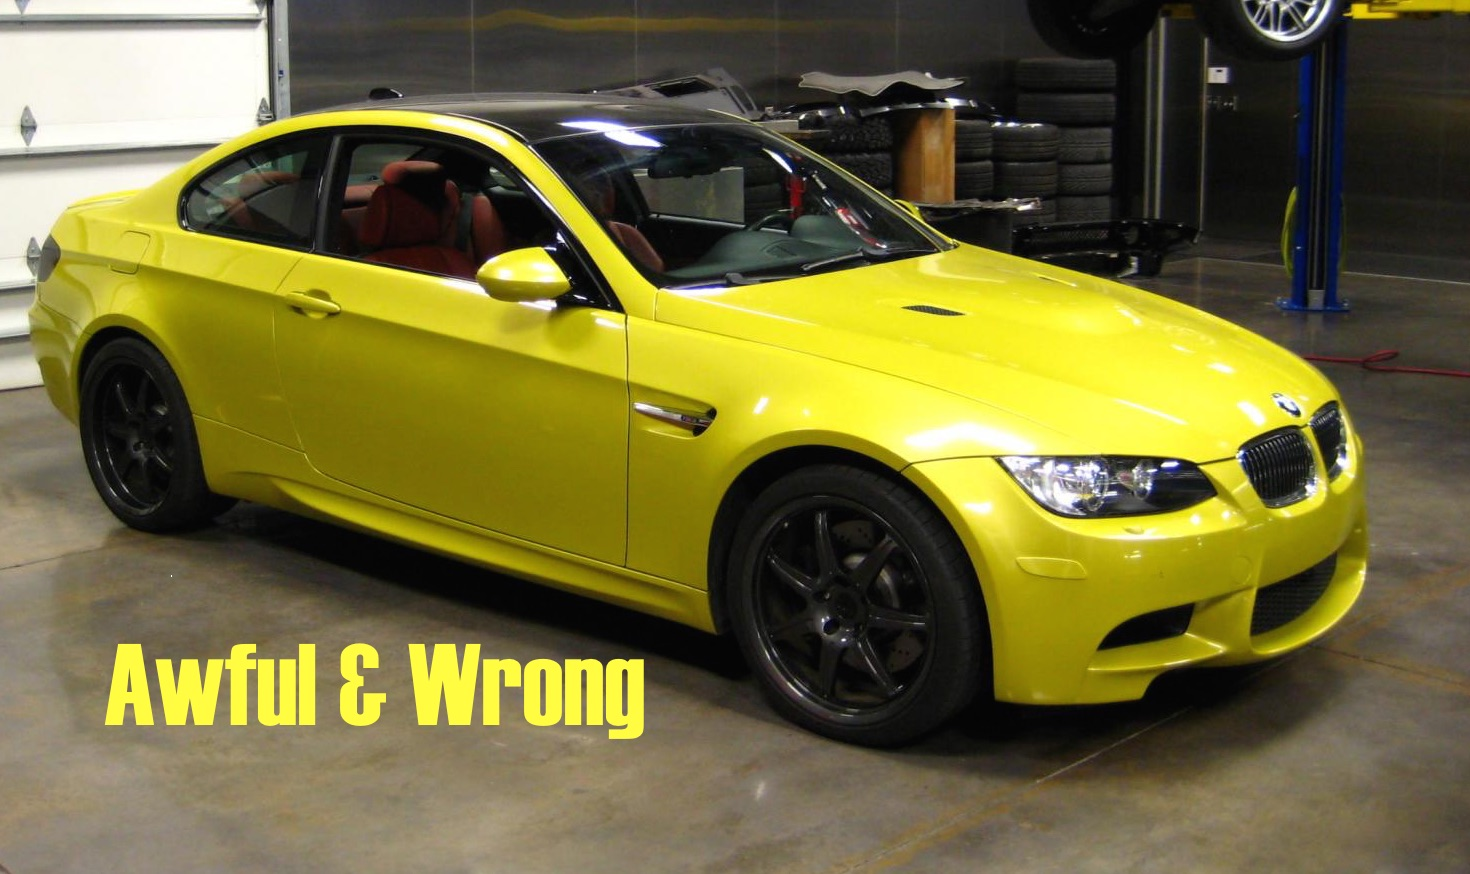 Bmw Finally Grasps The Concept Of Yellow Build Race Party